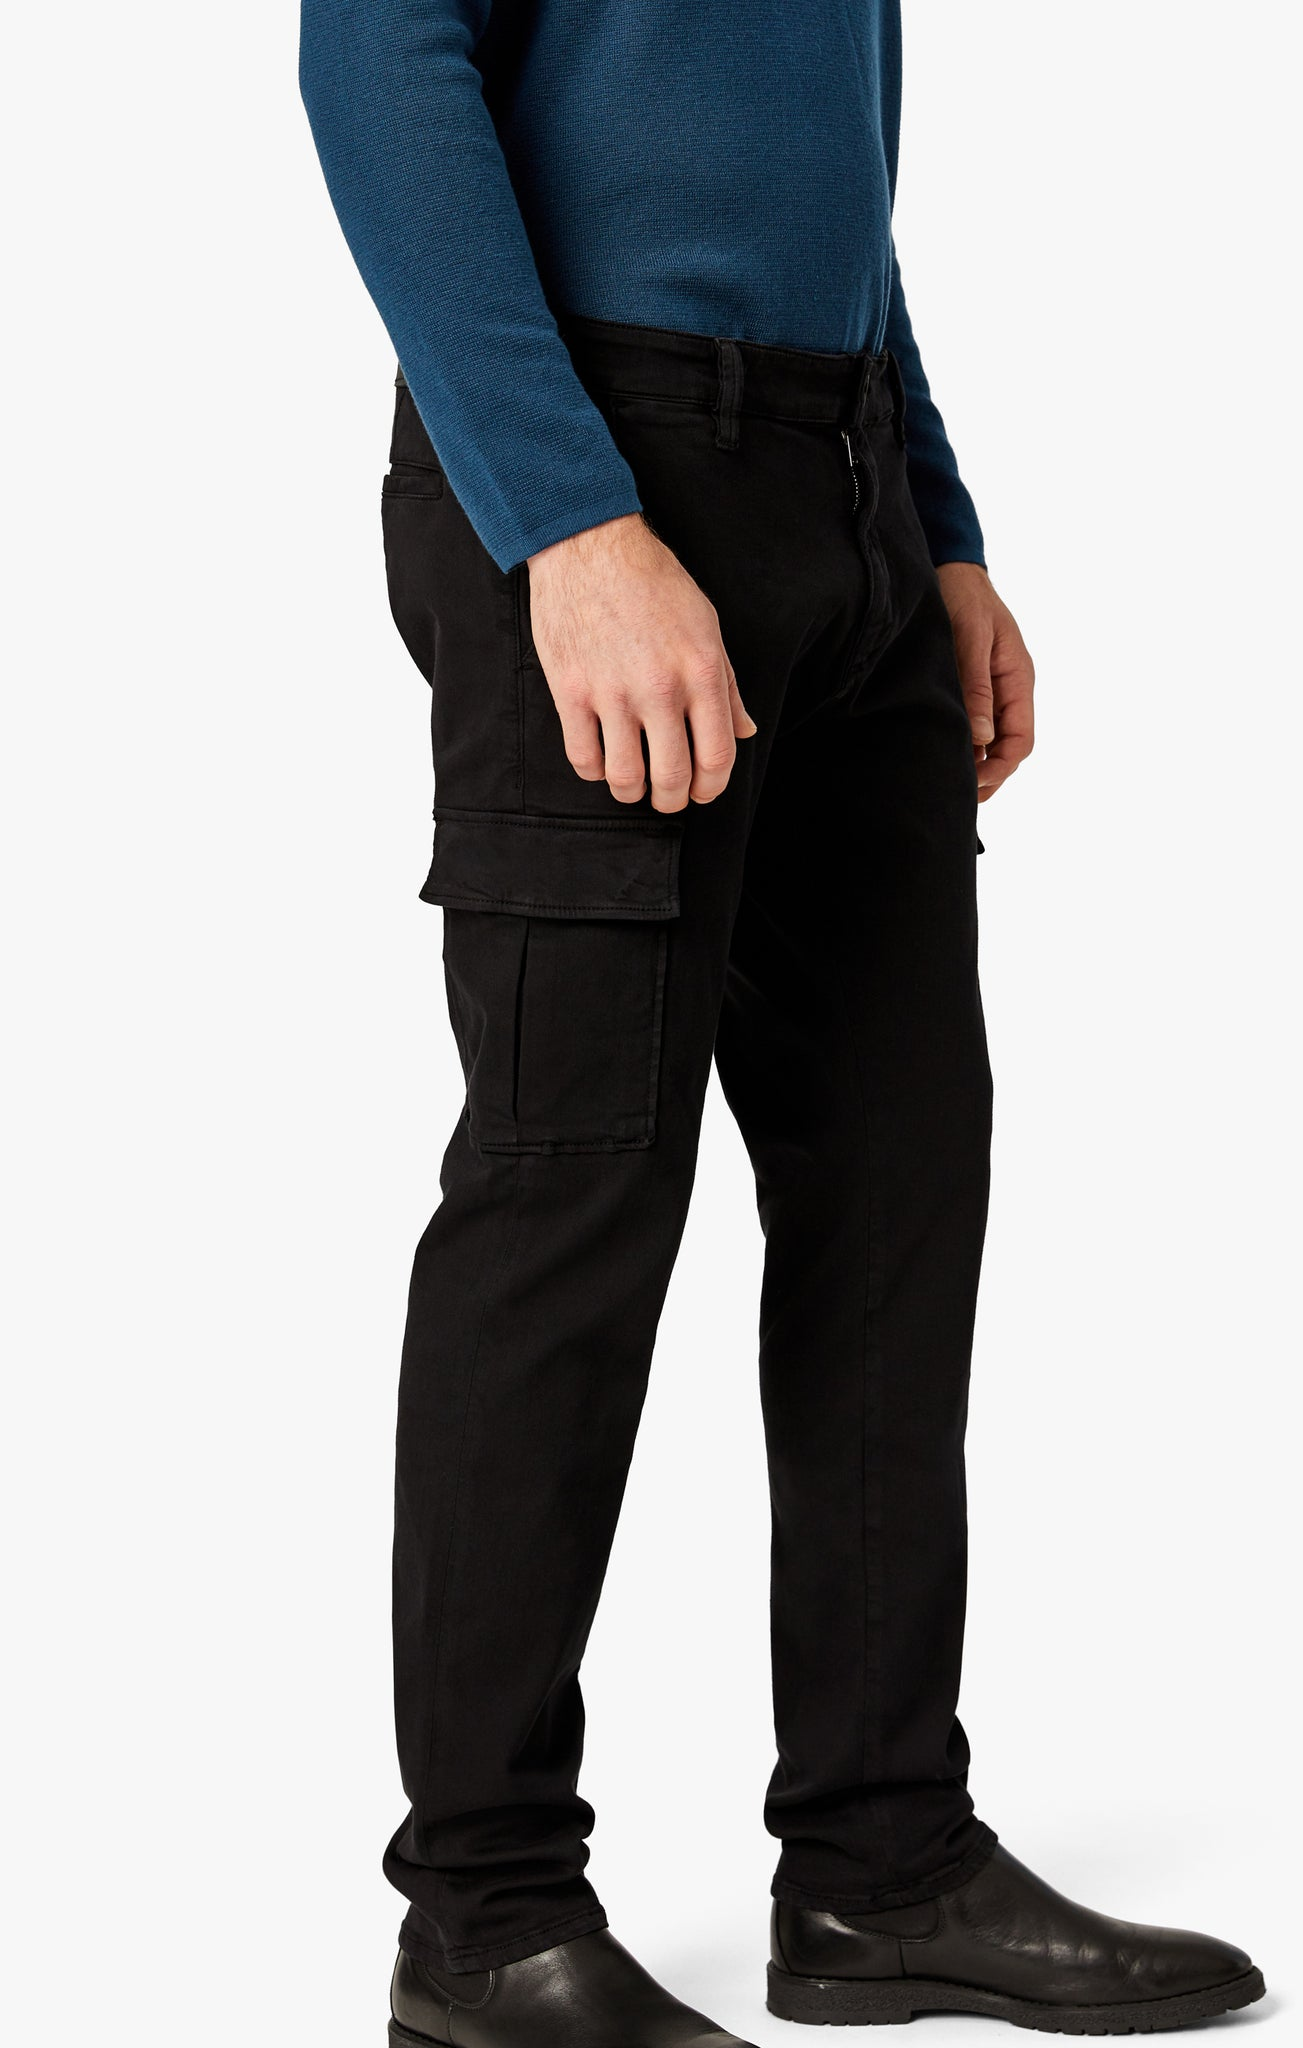 Carson Slim Leg Cargo Pants In Black Twill